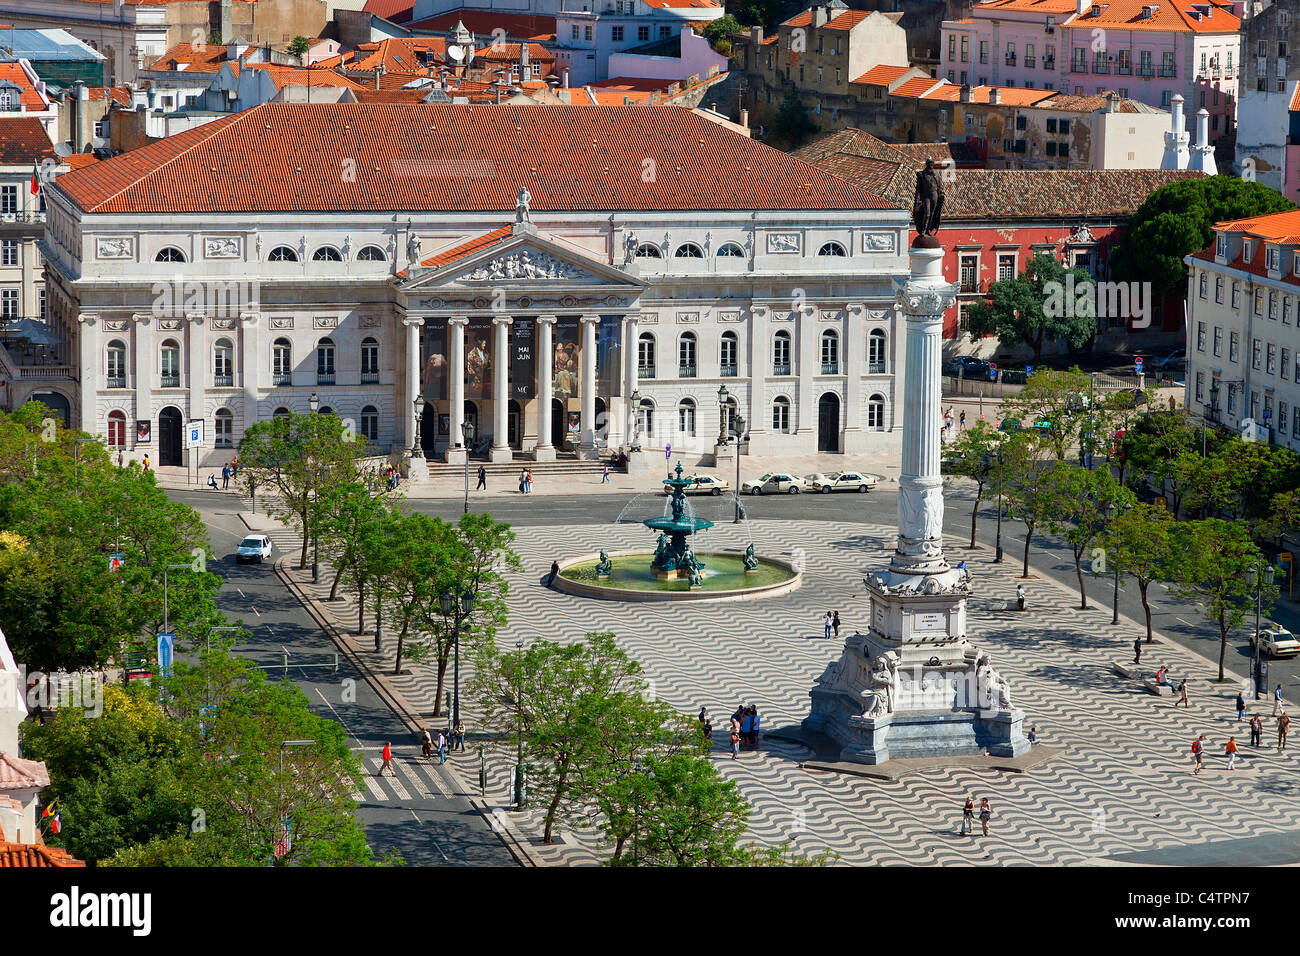 Europe, Portugal, Lisbon, Pedro IV Monument in Rossio Square and National Theatre - Stock Image